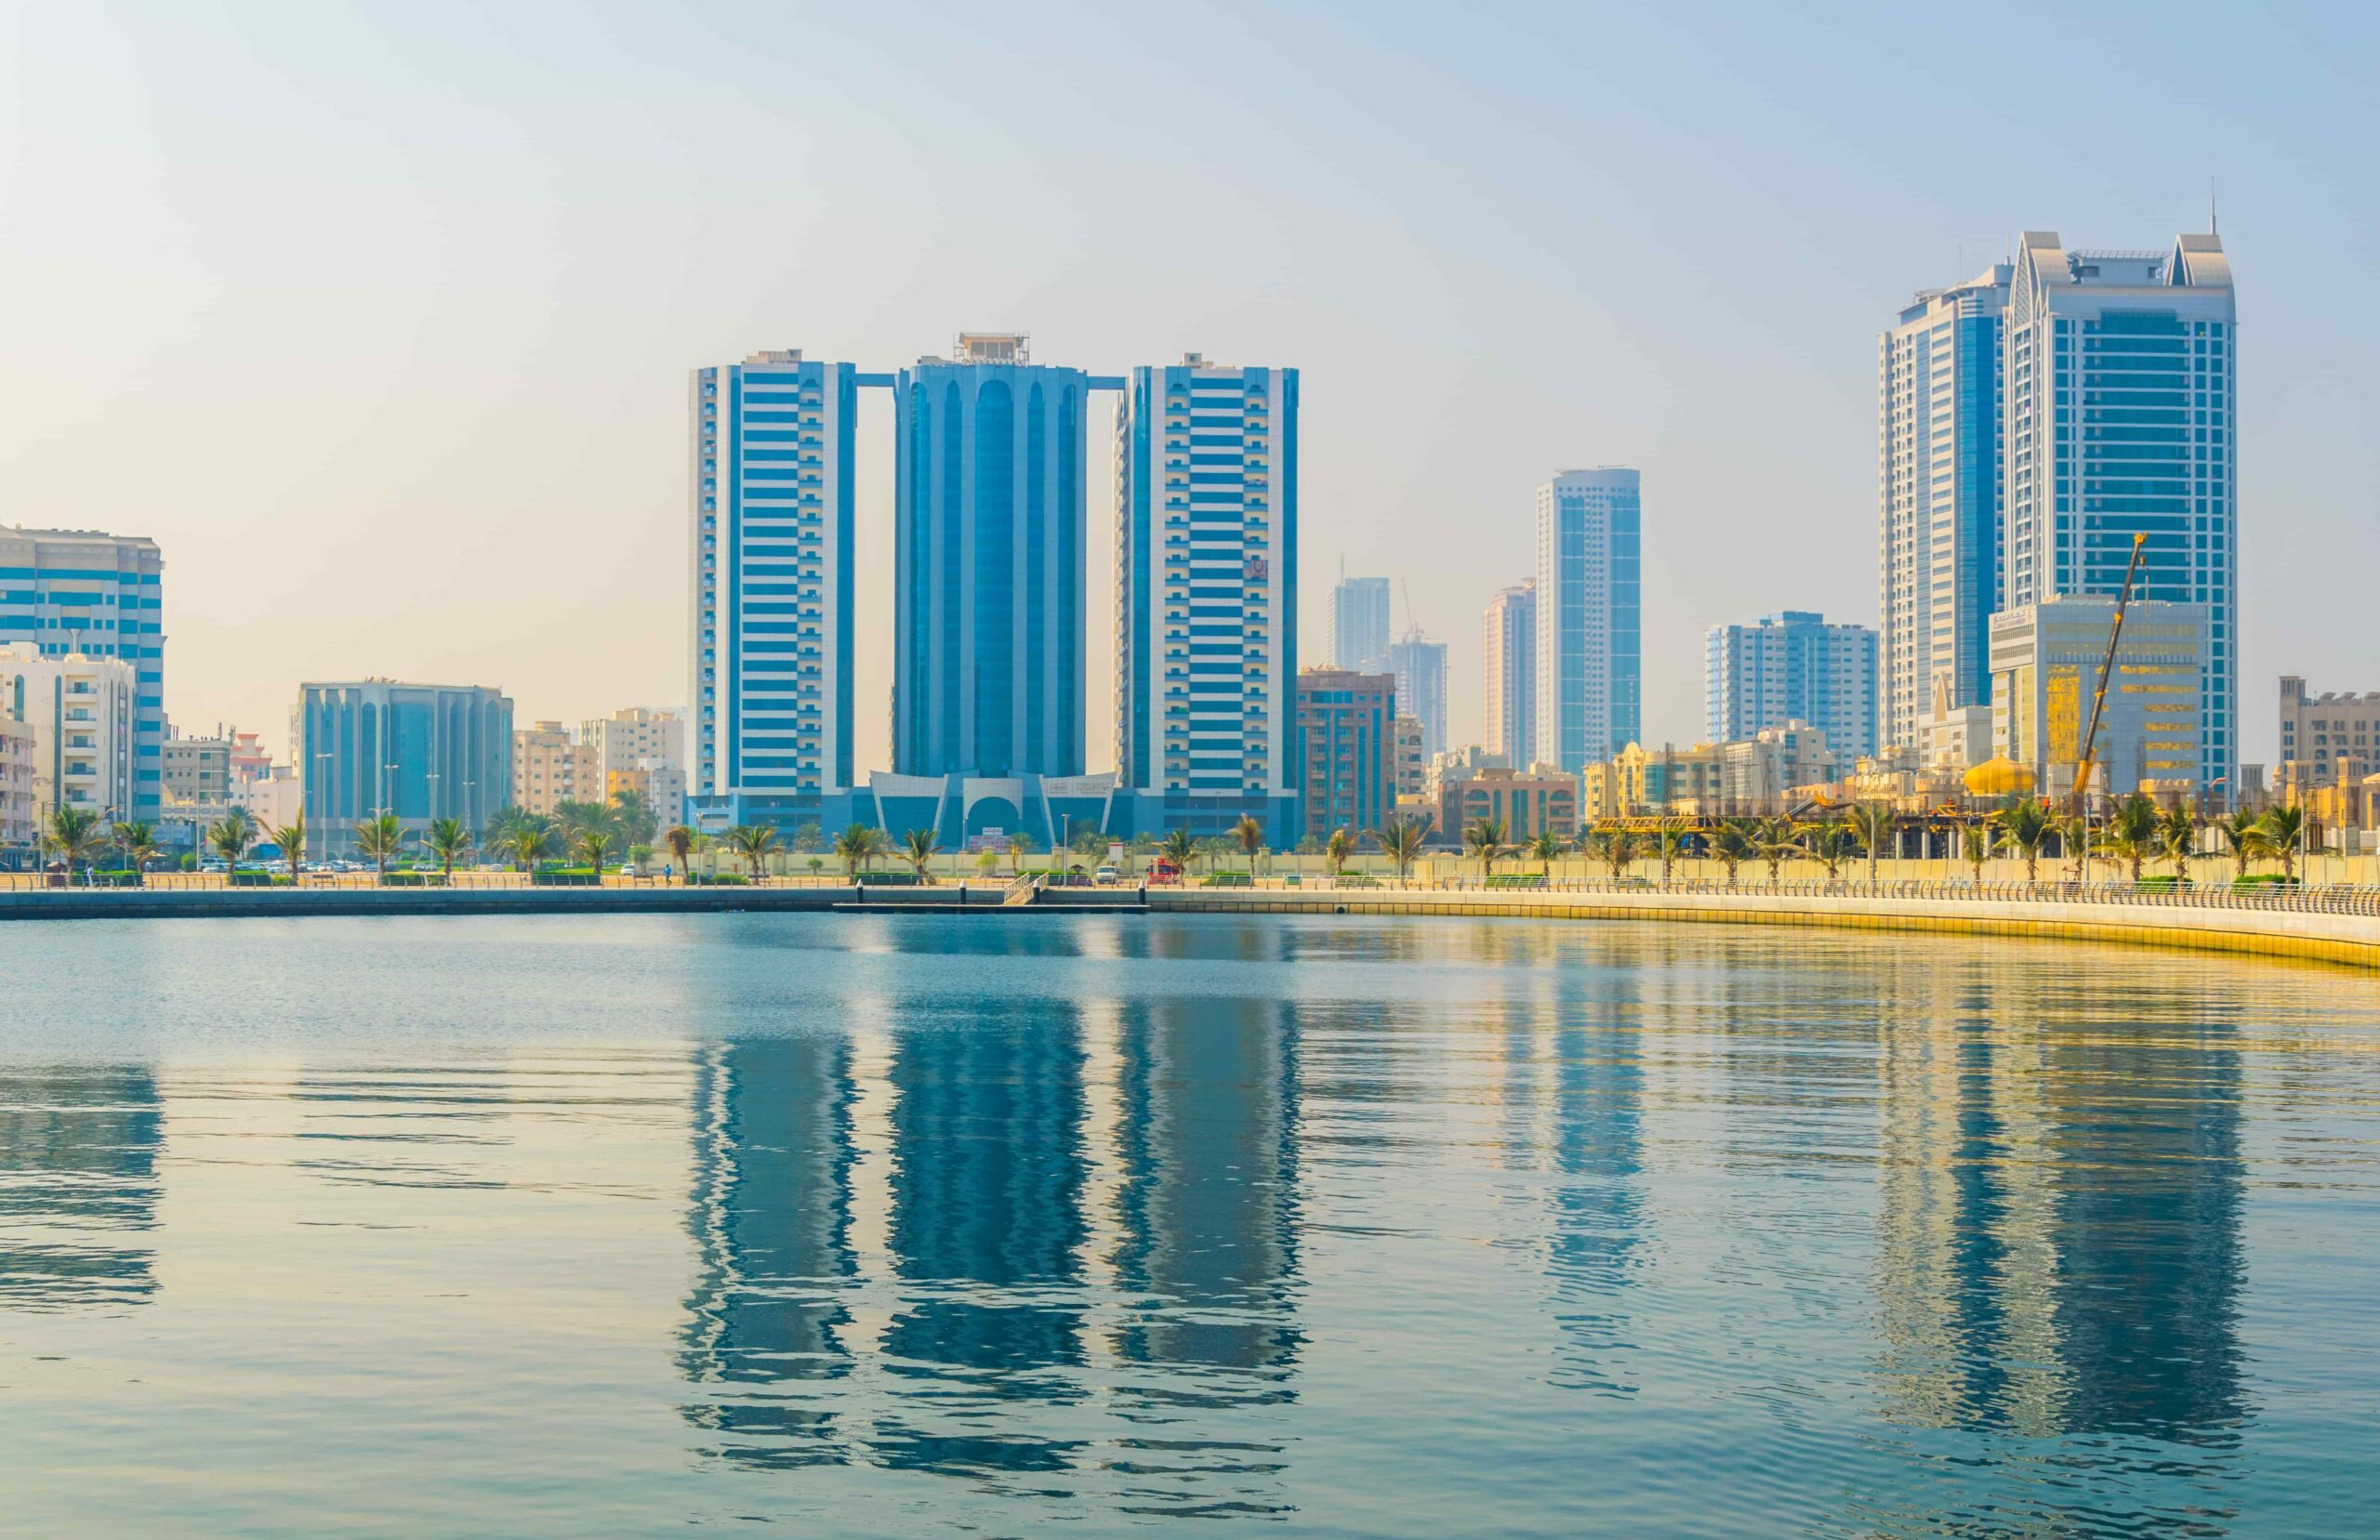 Skyline of Ajman over a sunny day